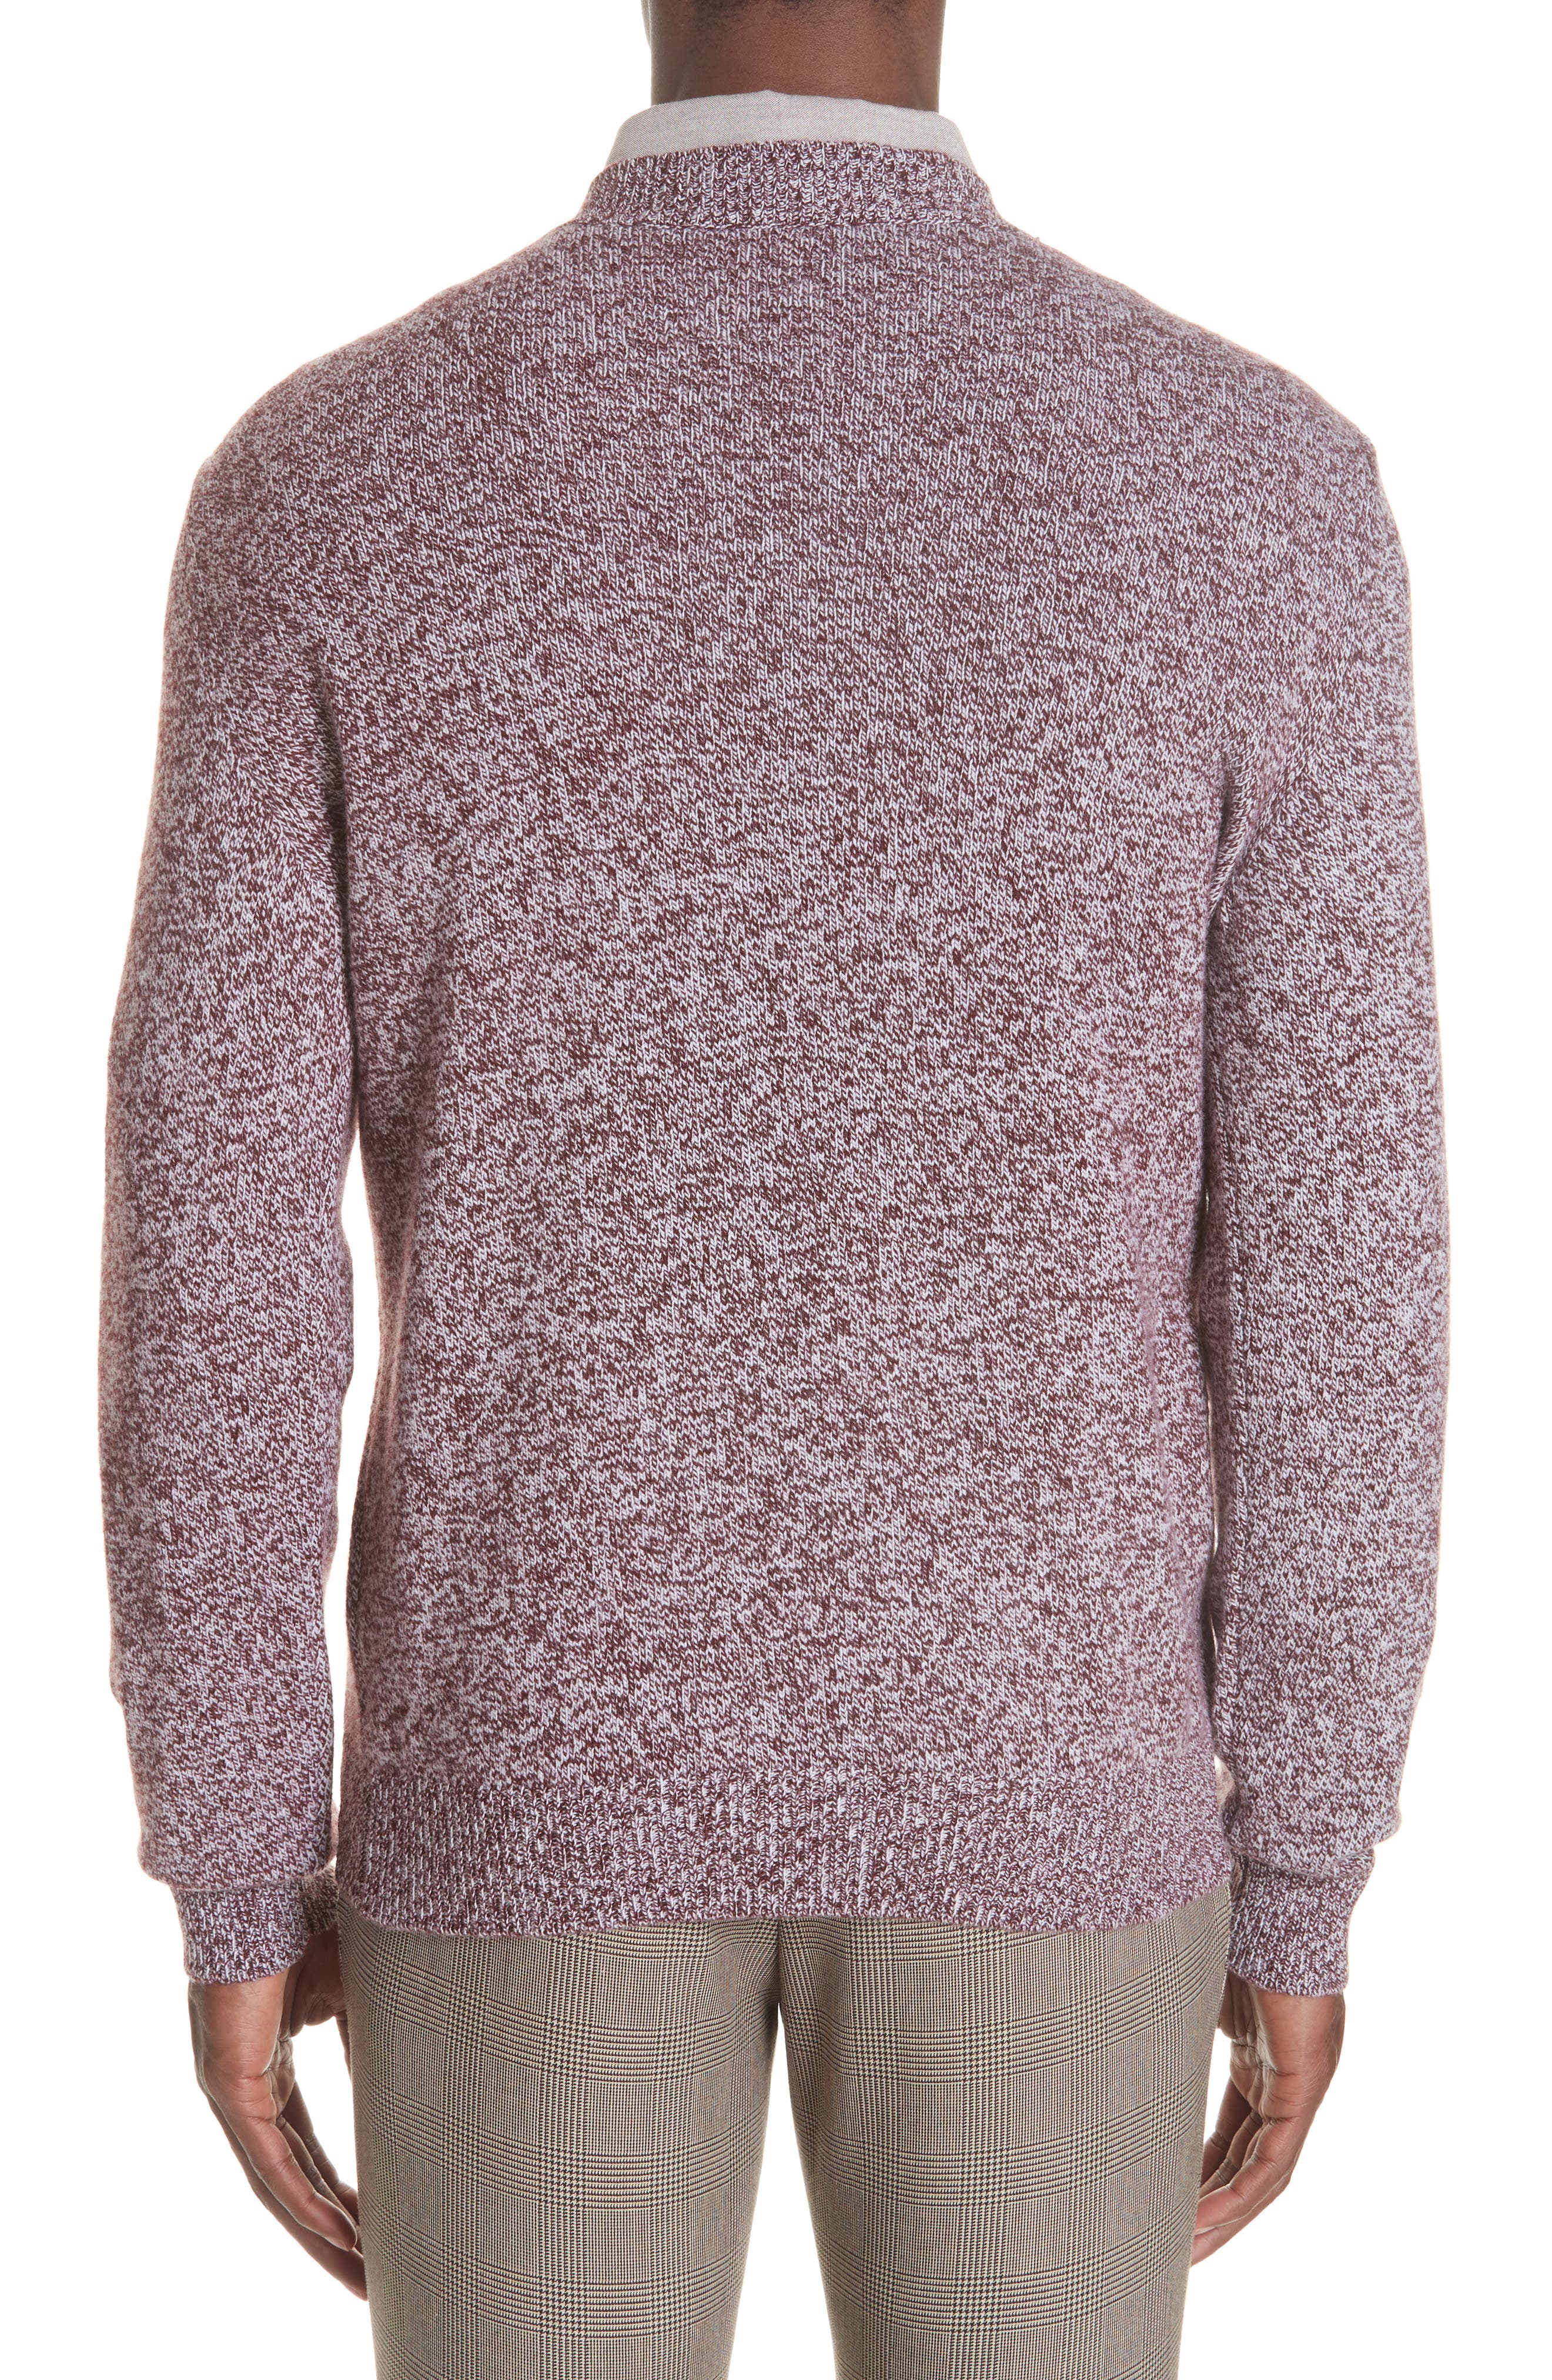 Marble Wool Sweater,                             Alternate thumbnail 2, color,                             602